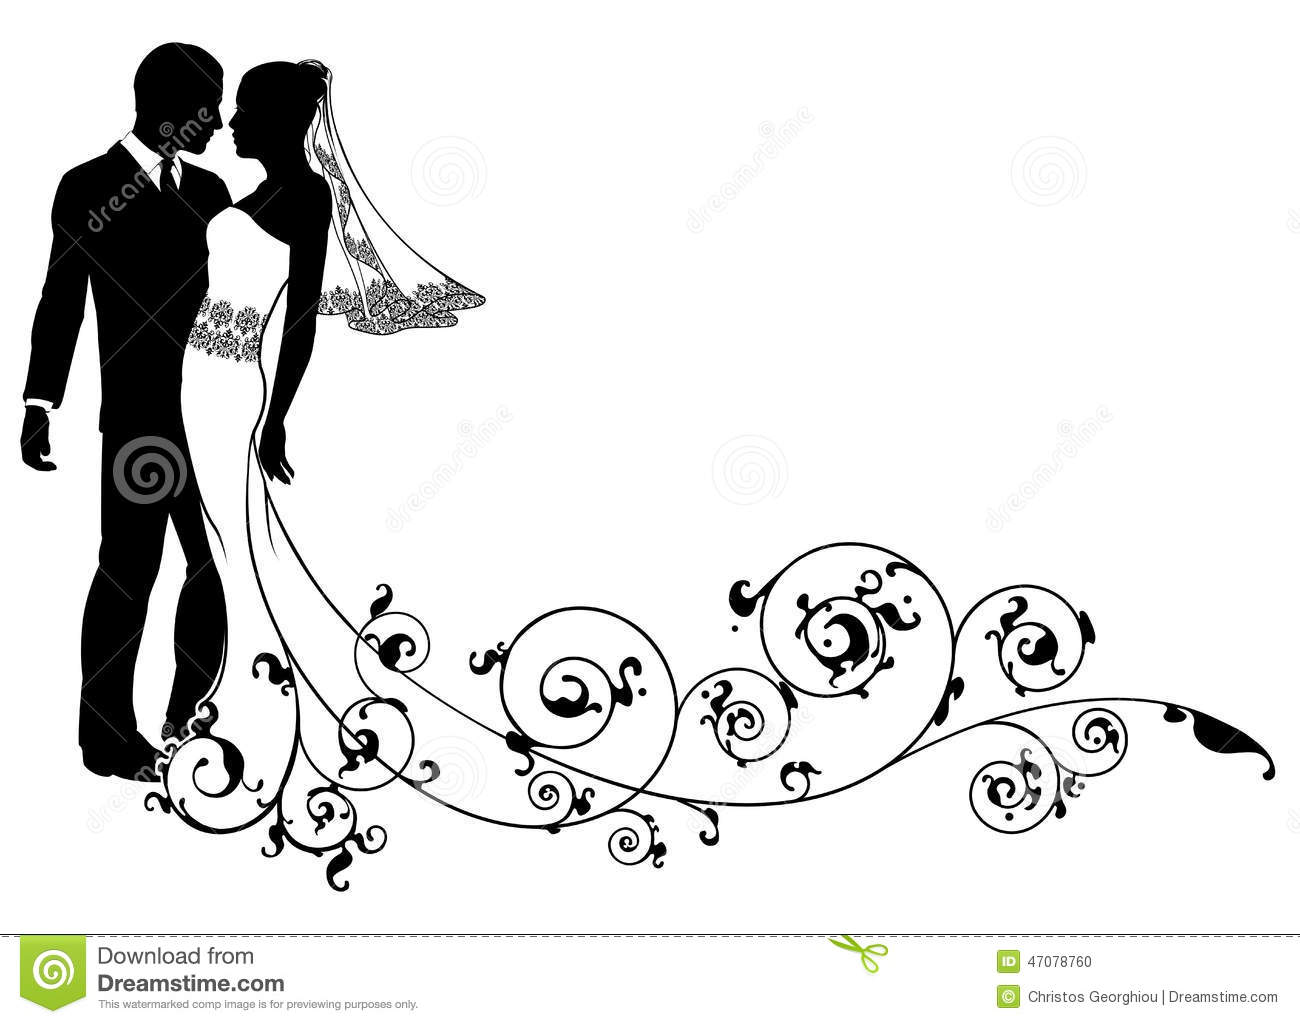 Paper Clip additionally 83380 Vector Star Shapes also Stock Photos Couple Dancing Sketch Concept Image25003733 moreover Textures besides Design 20clipart 20borders. on wedding vector graphics